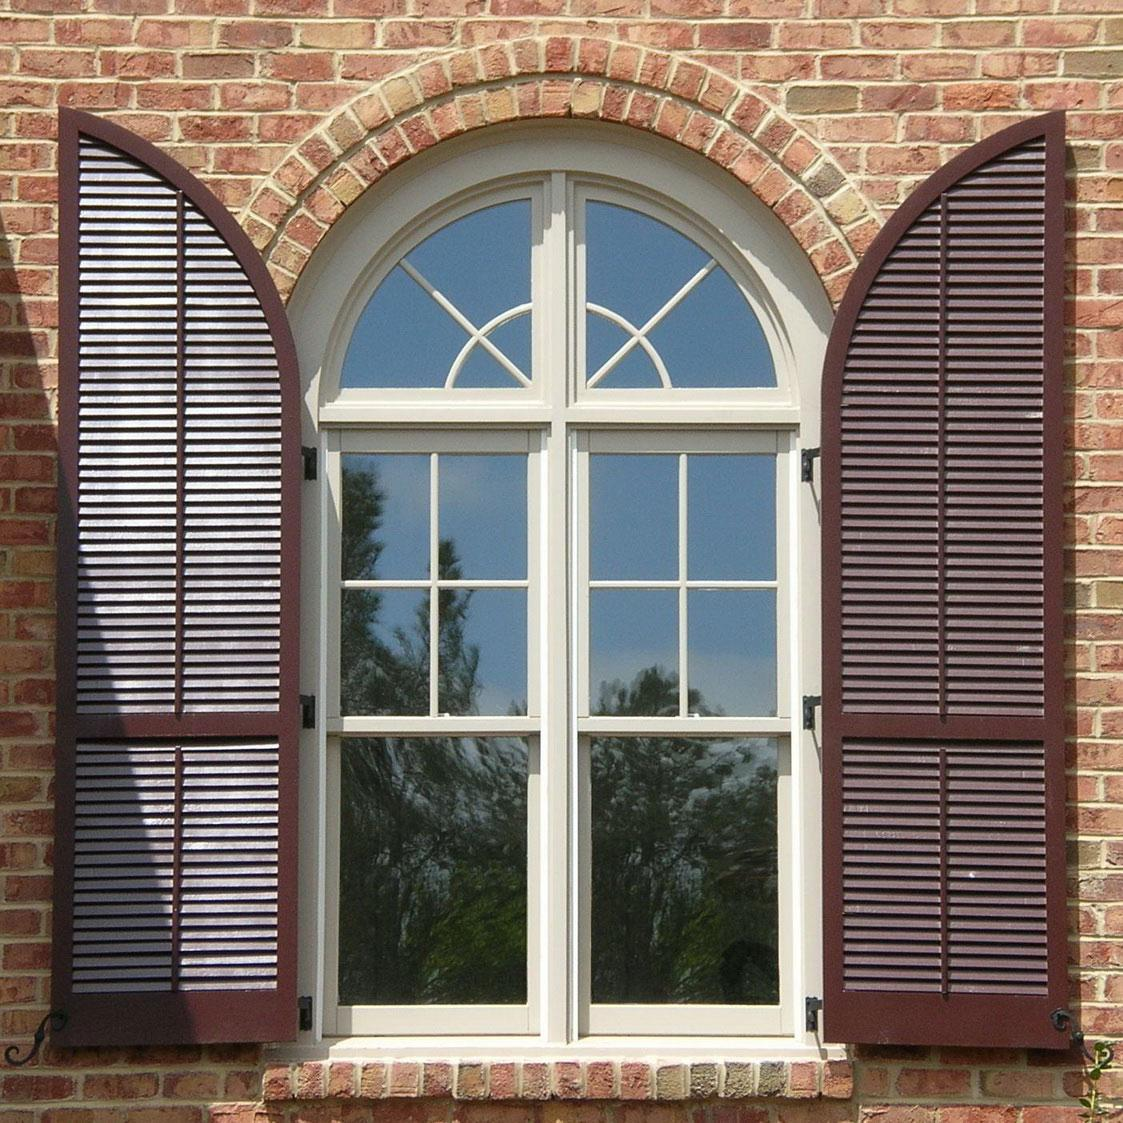 Exterior shutters add value and increase the appeal of your house